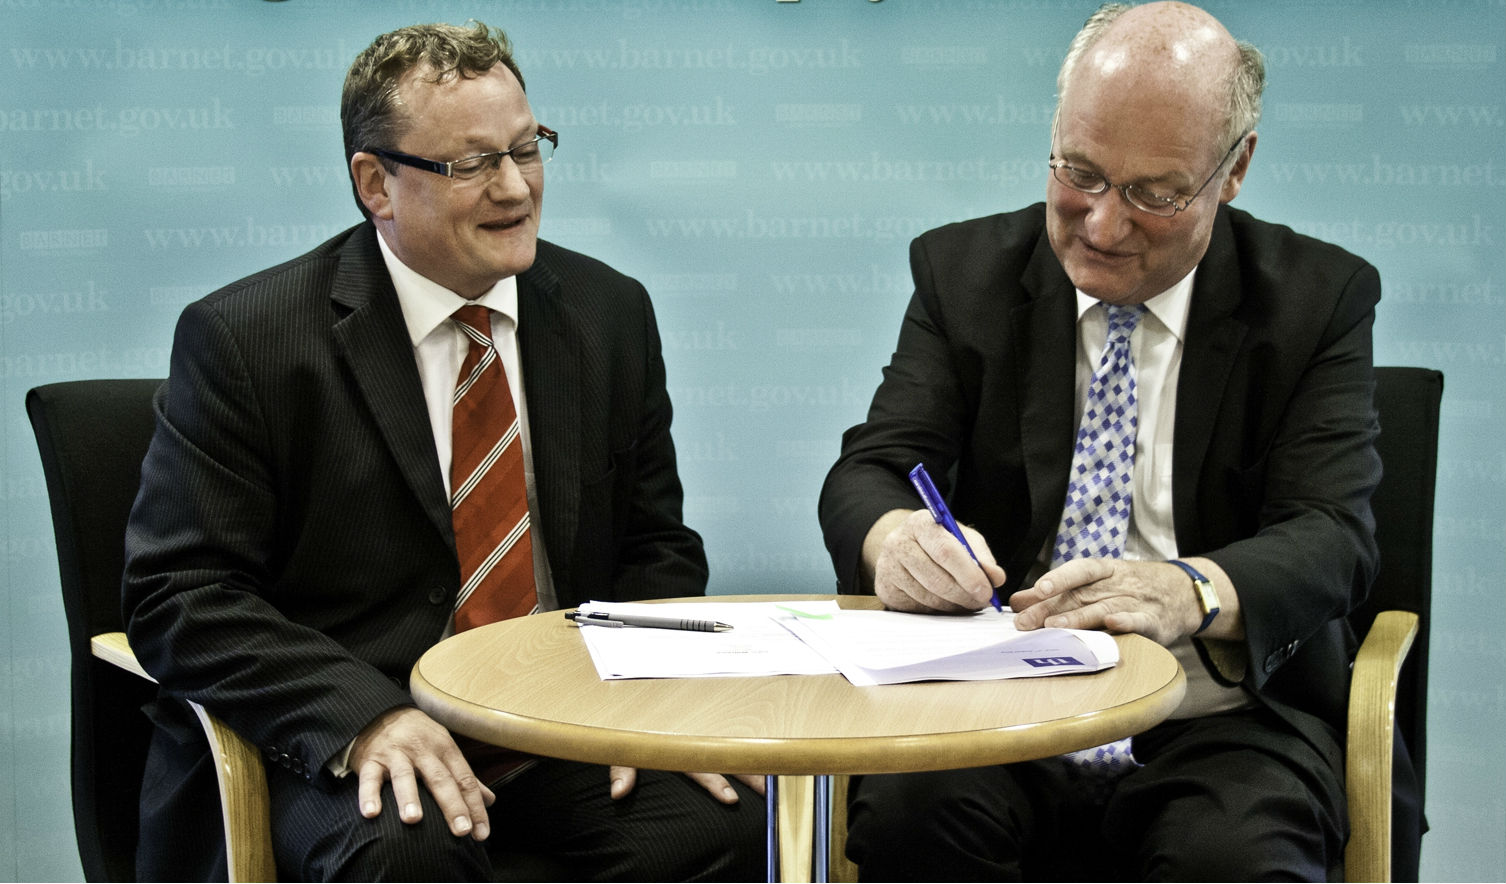 All smiles: Capita's group finance director Gordon Hurst and Barnet Council leader Richard Cornelius signing the customer services contract